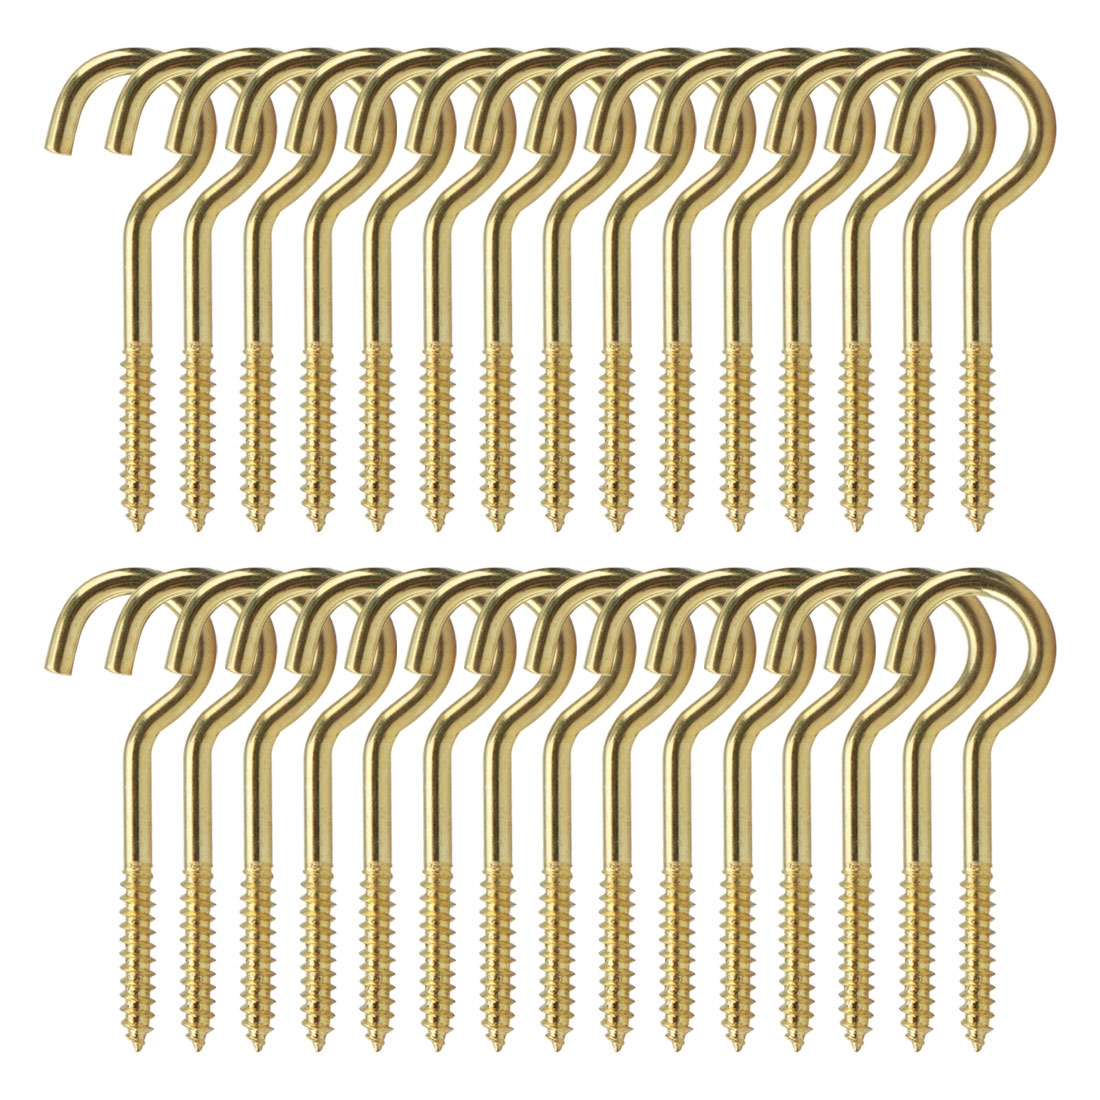 30pcs Cup Ceiling Hooks 1-5/8 Inch Durable Metal Screw in Hanger Hooks Gold Tone